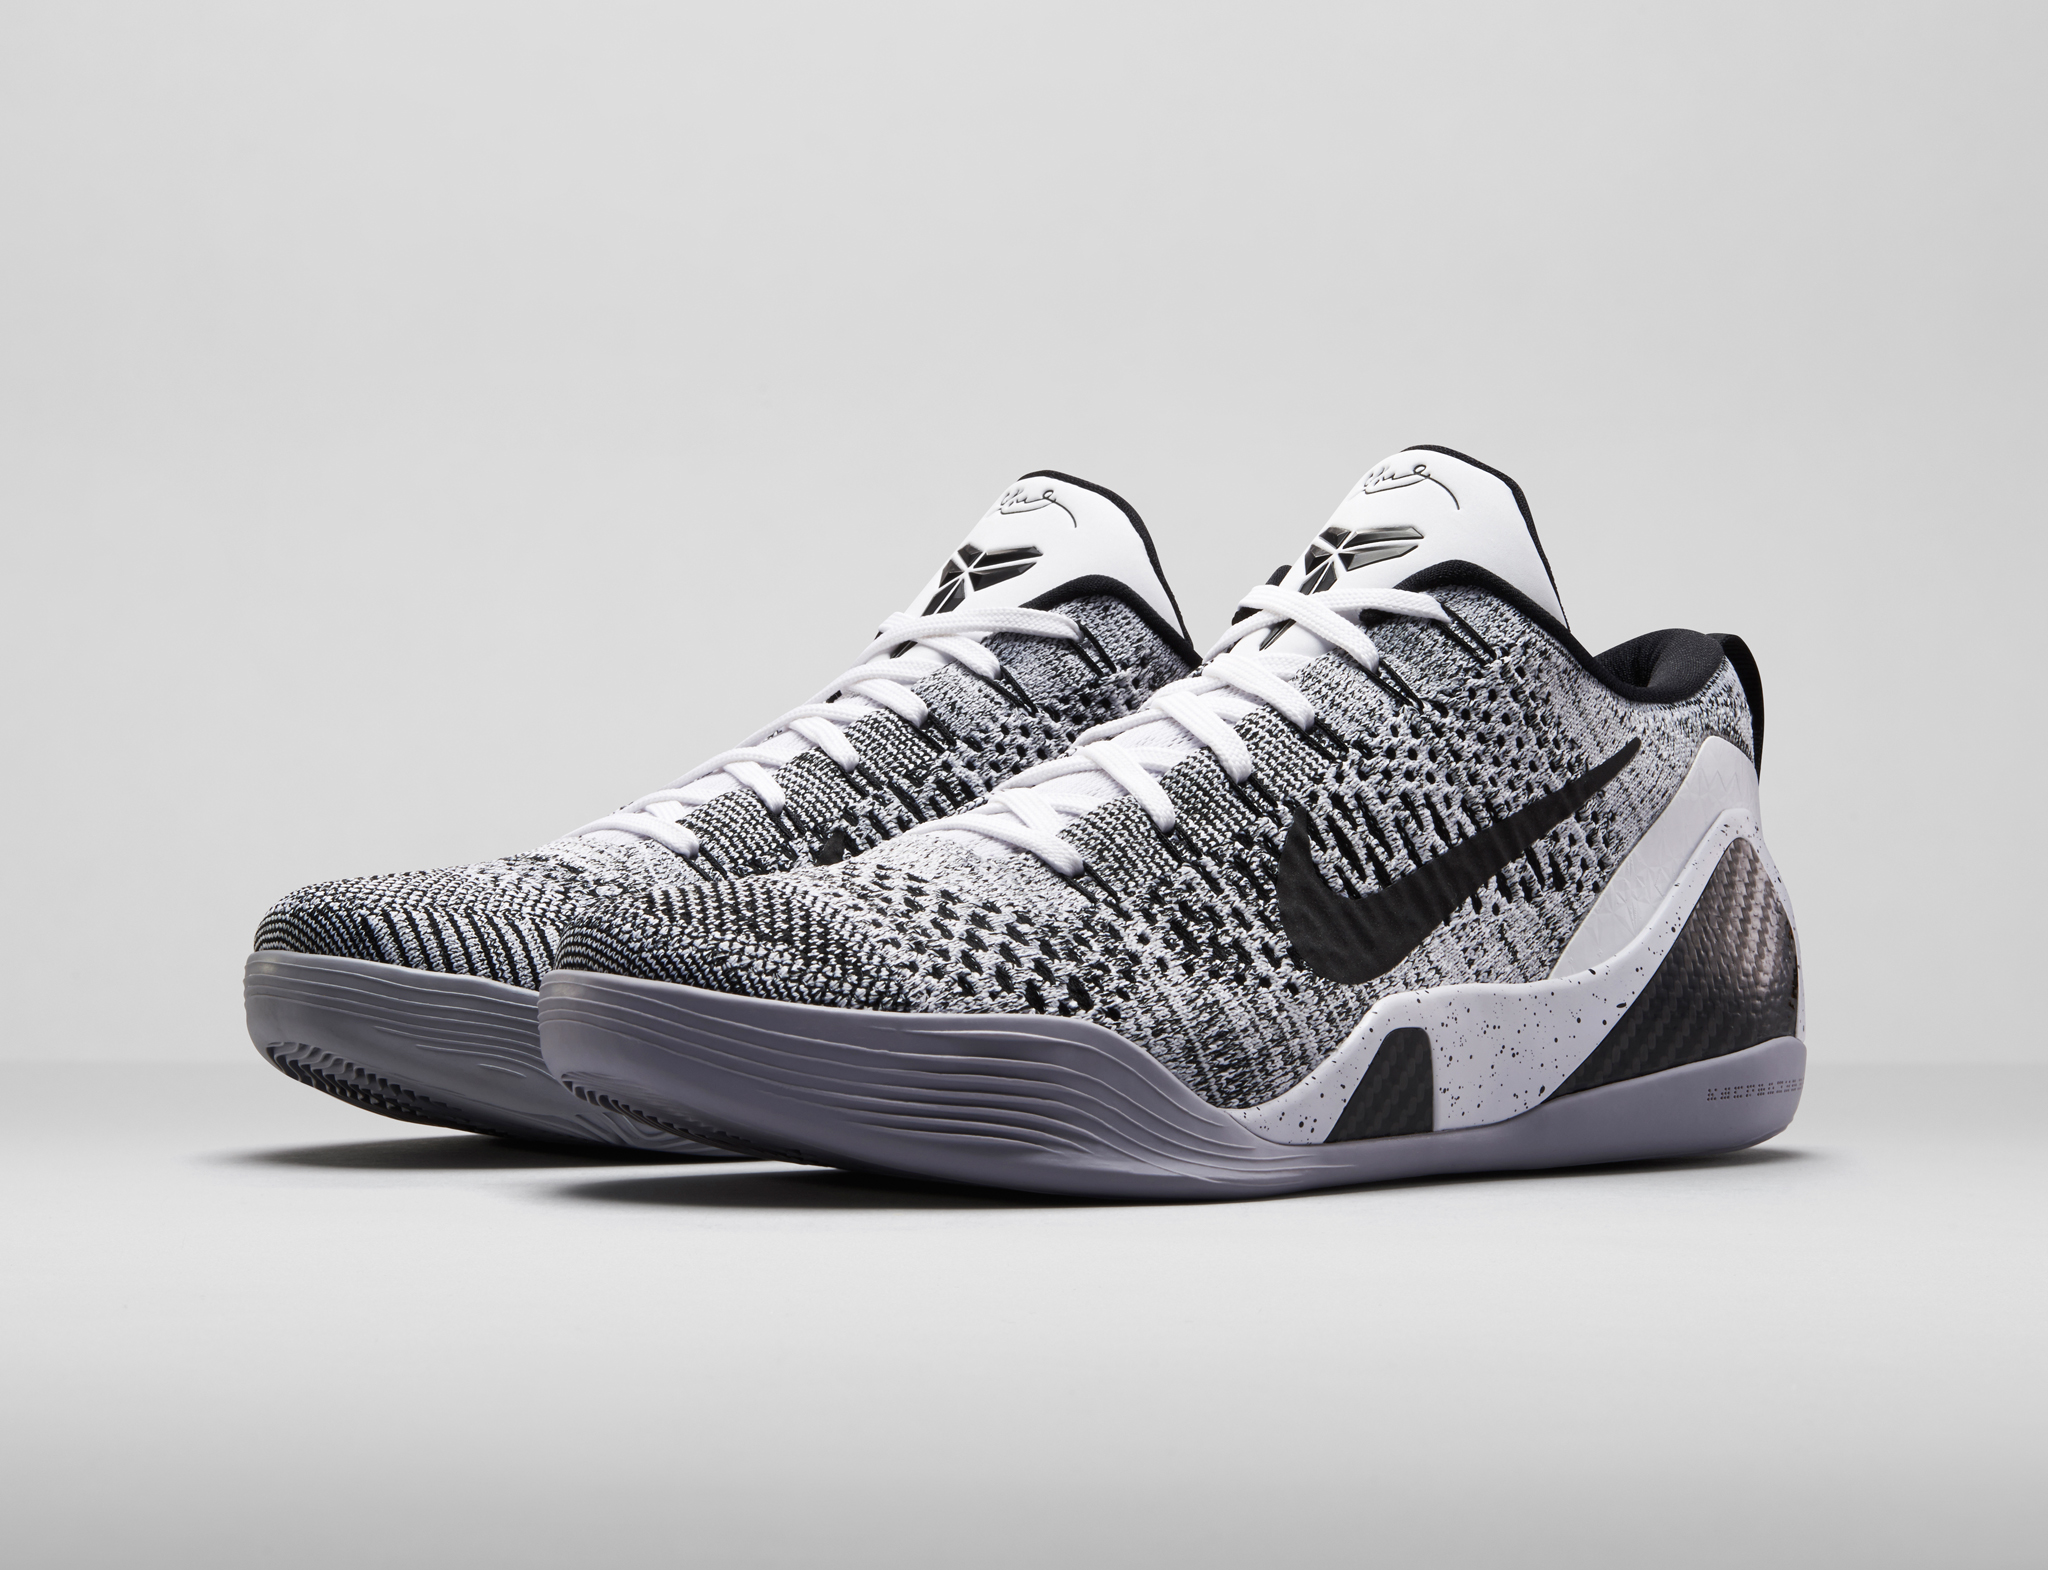 Nike Kobe 9 Elite Low Beethoven 1